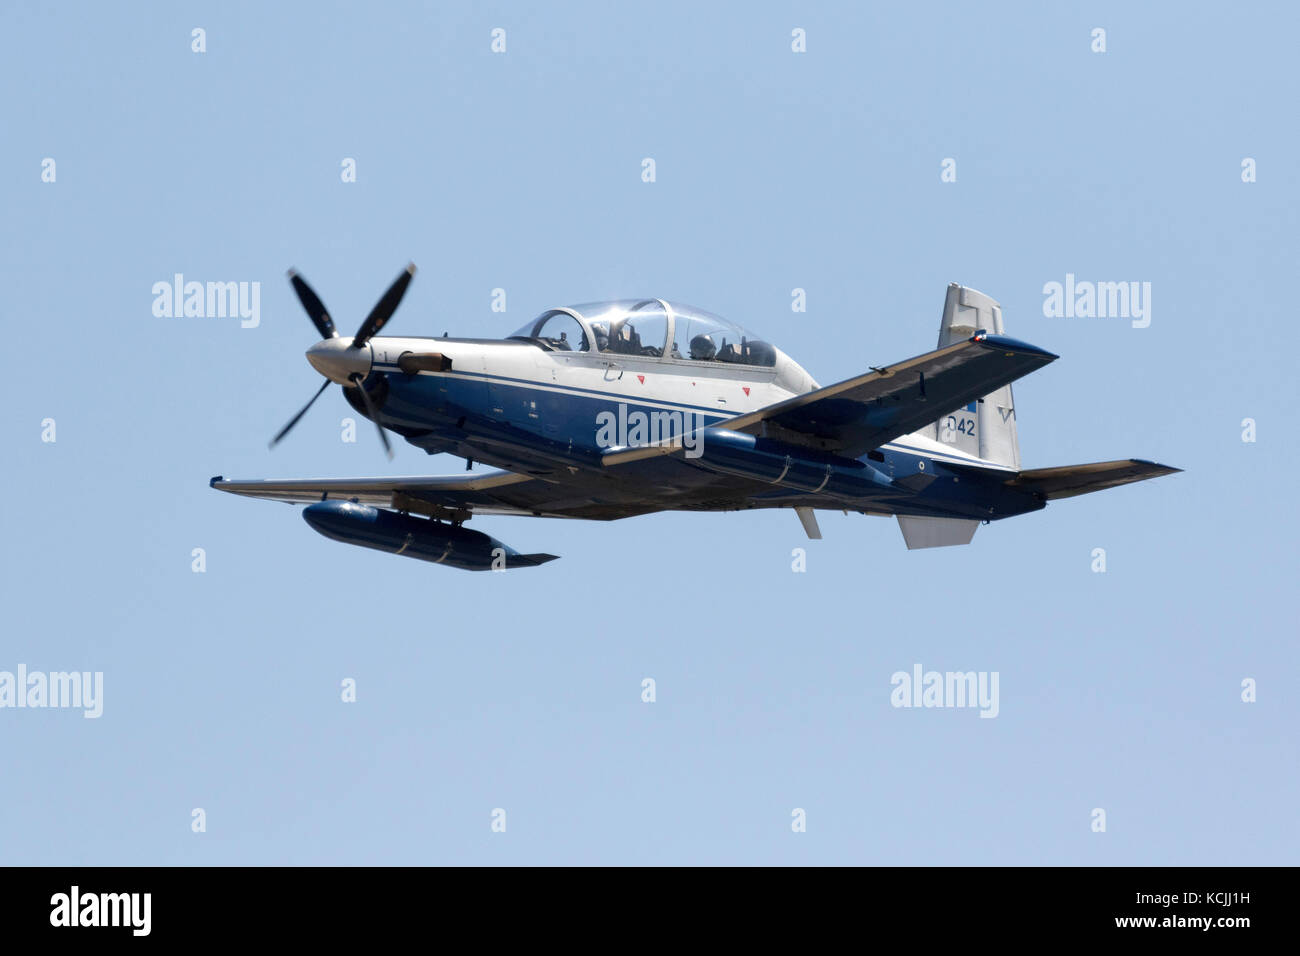 Greek Air Force Raytheon T-6A Texan II [042] departing after participating in the static display of 25th Malta International - Stock Image